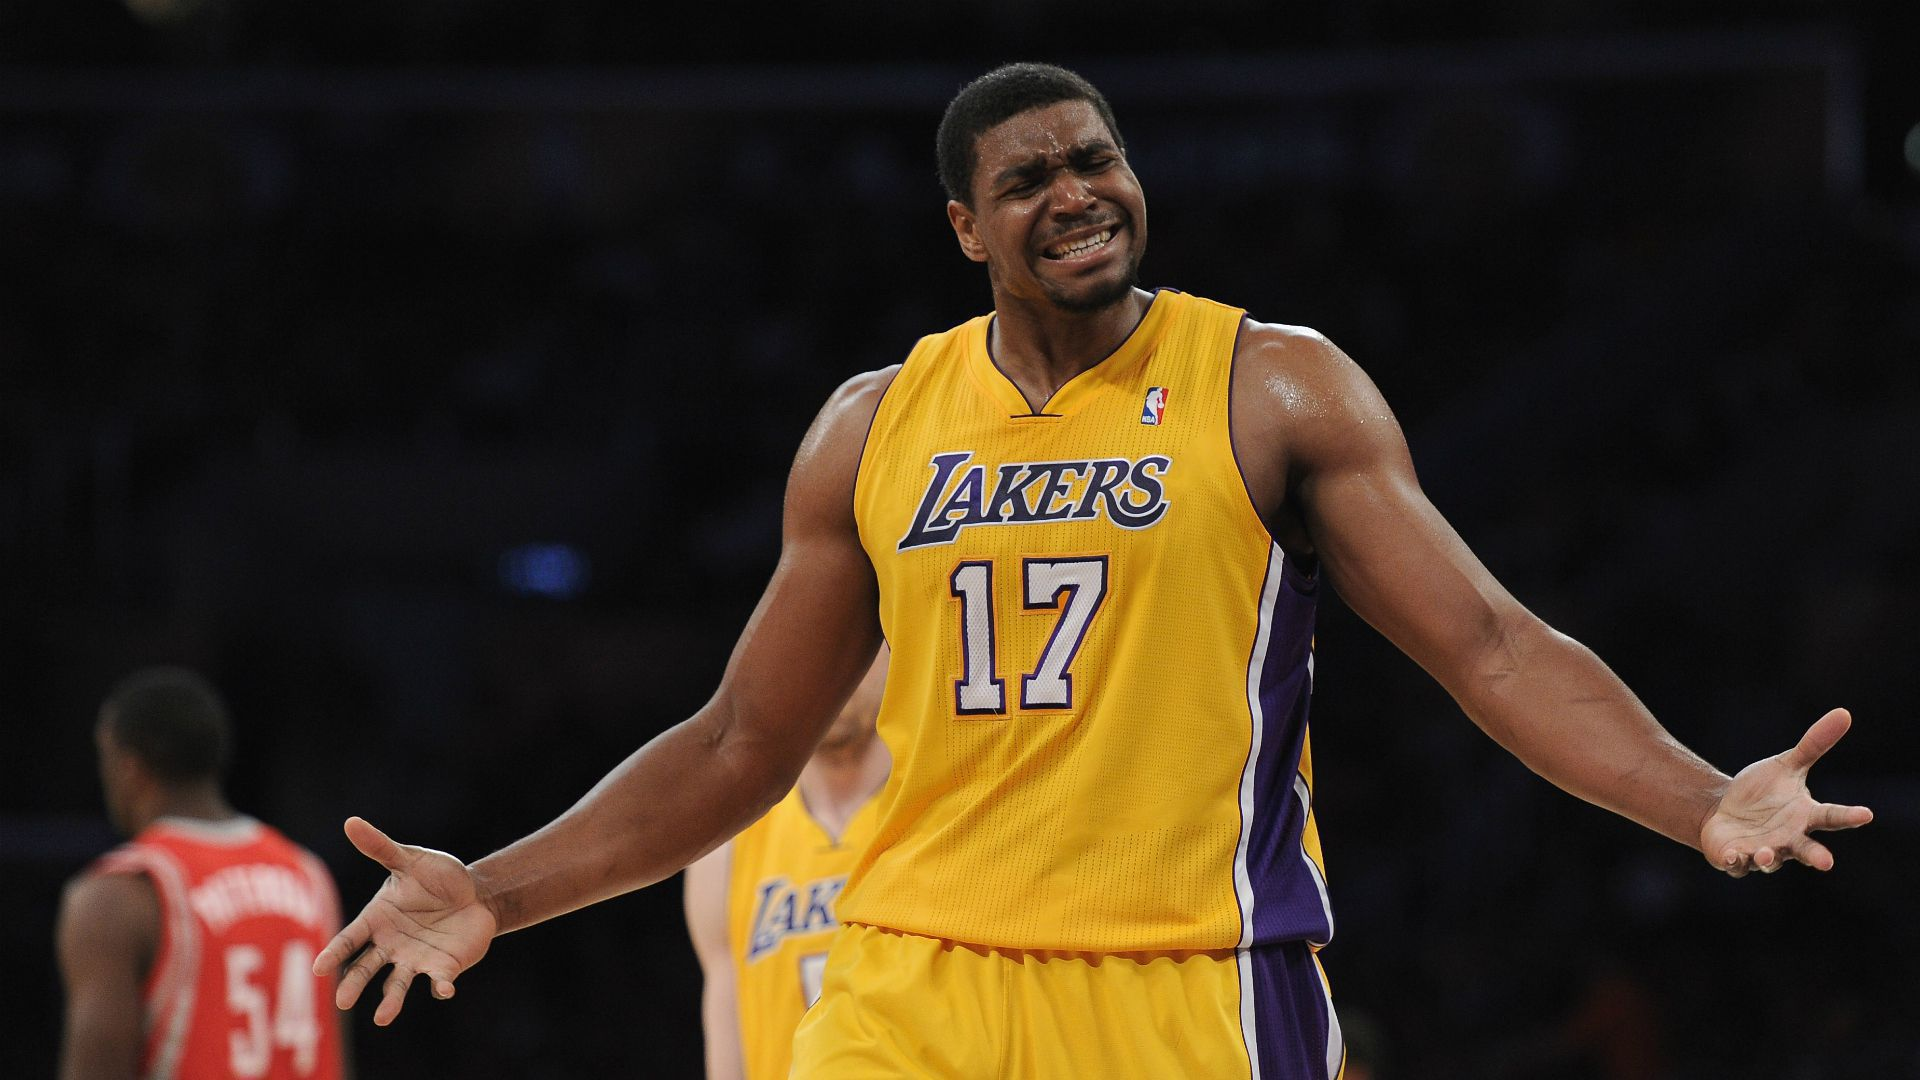 Andrew Bynum In High Resolution